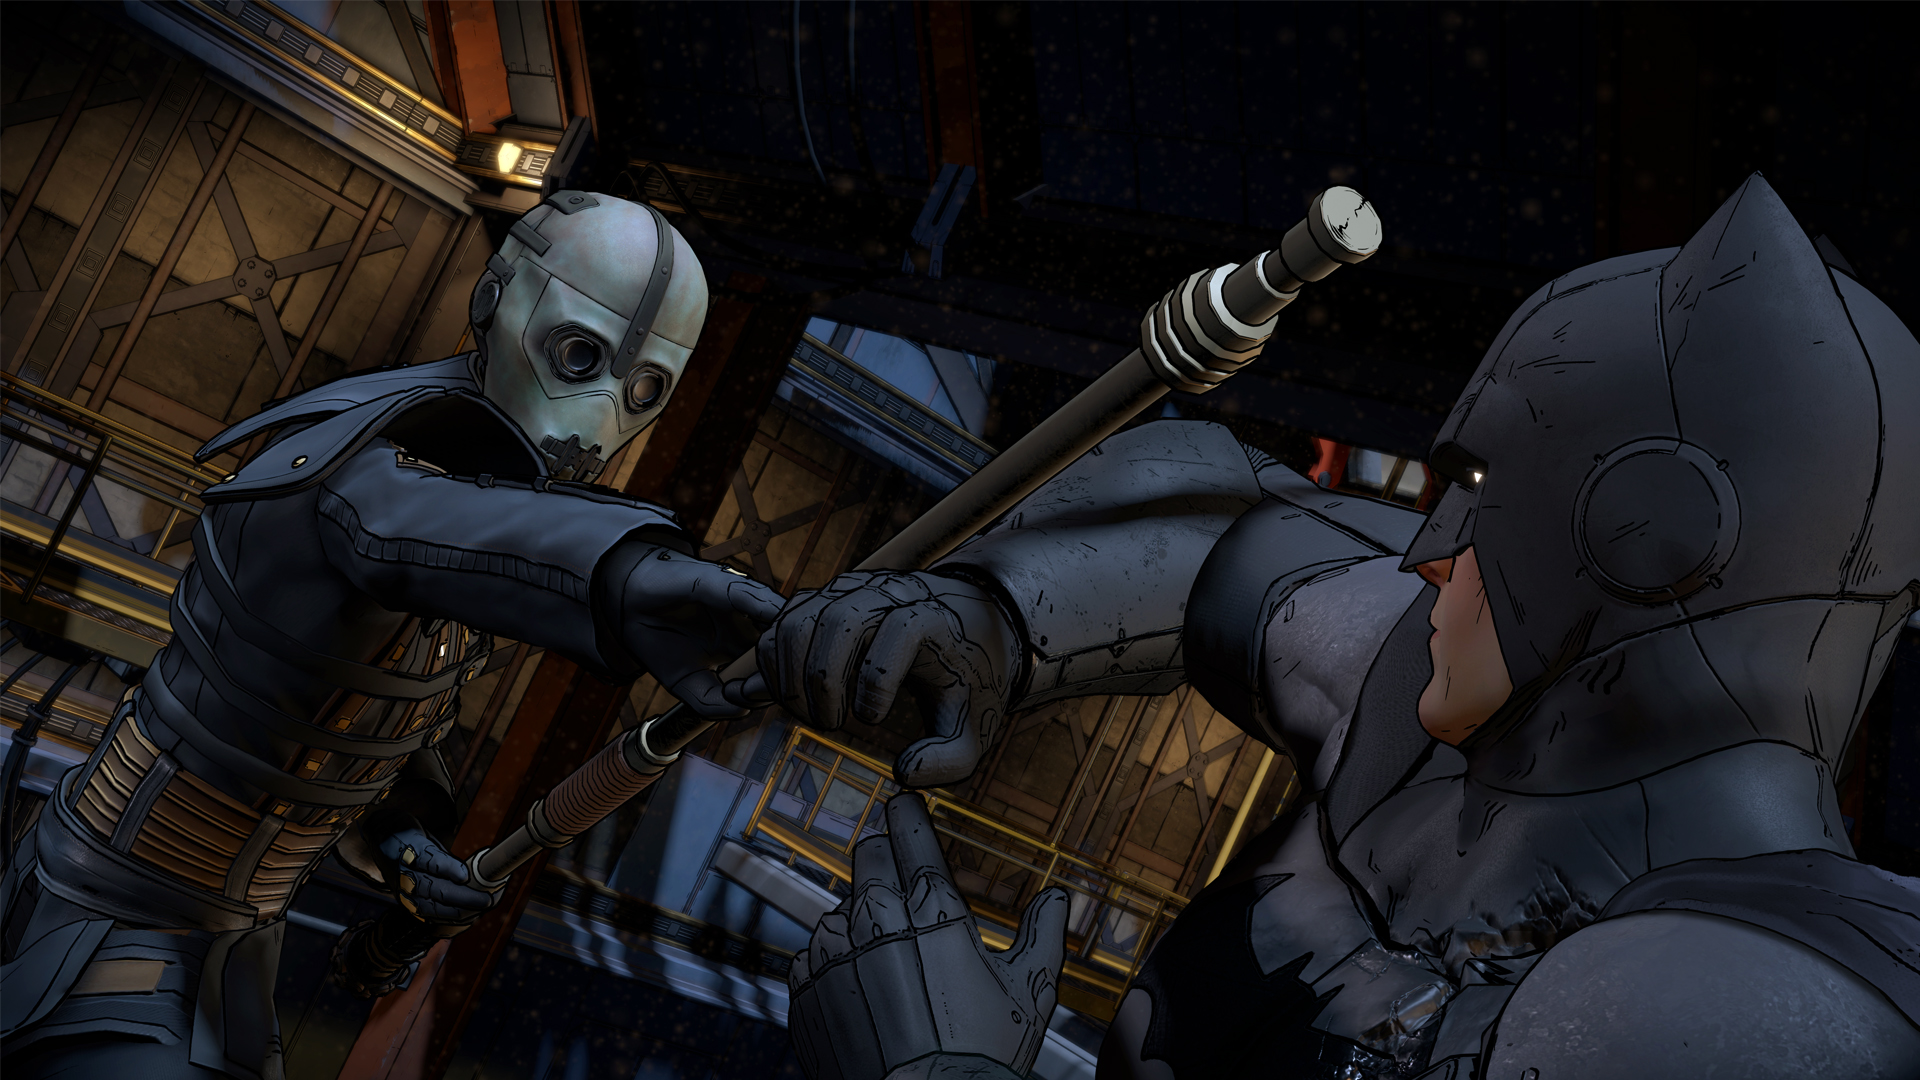 Review: Batman: A Telltale Series is a phenomenal Batman story plagued with technical issues and bugs